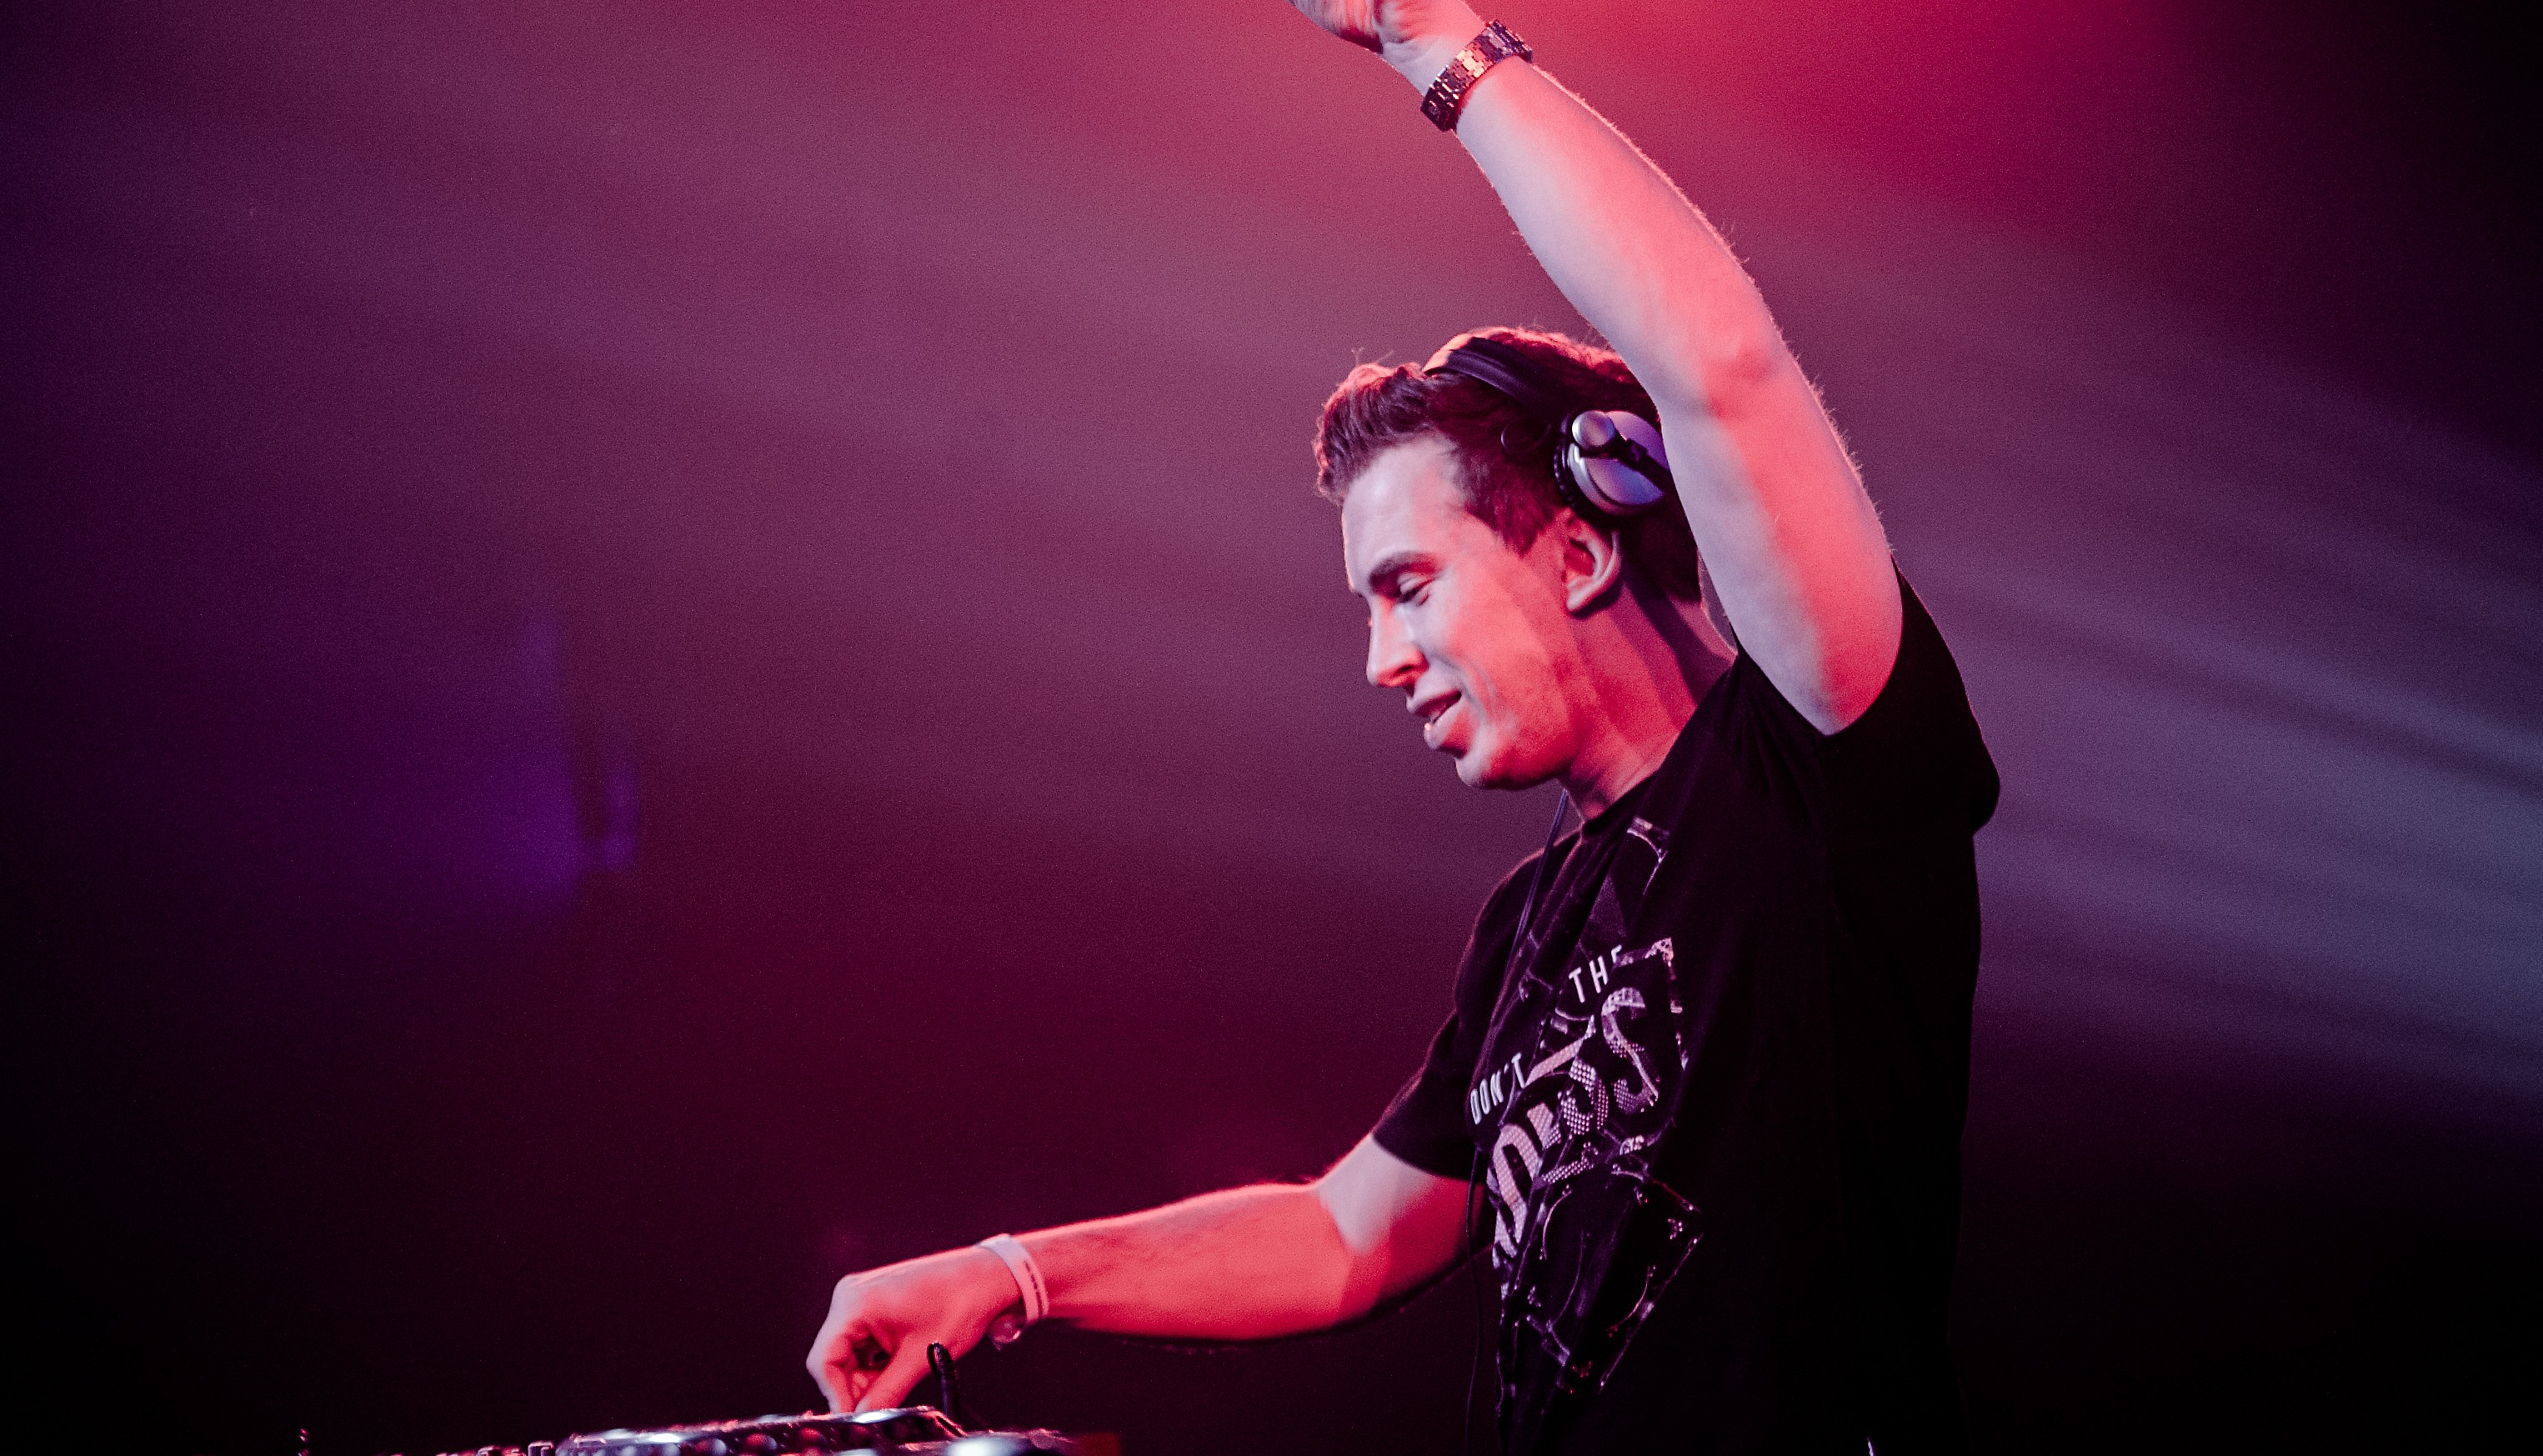 hardwell wallpaper hd - photo #10